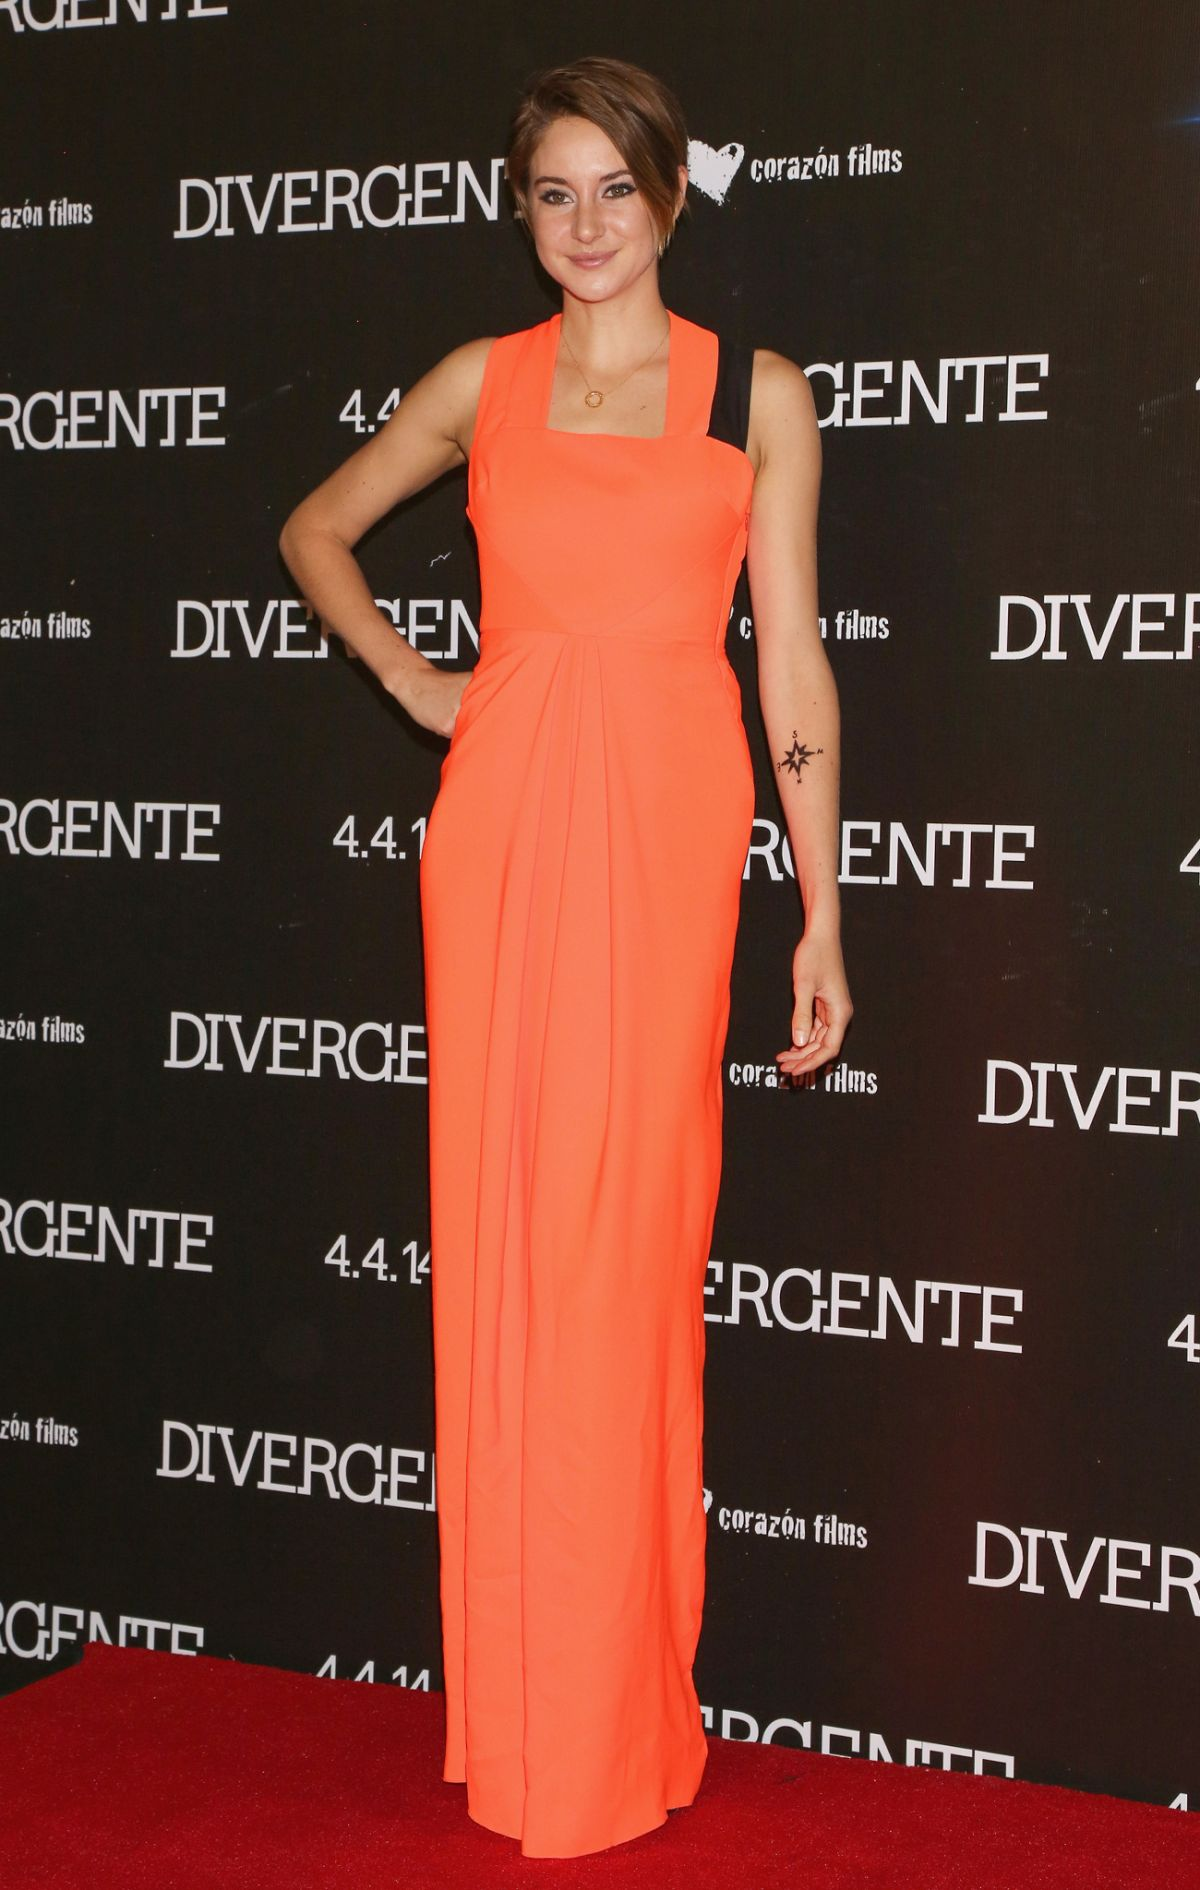 SHAILENE WOODLEY at Divergent Premiere in Mexico City